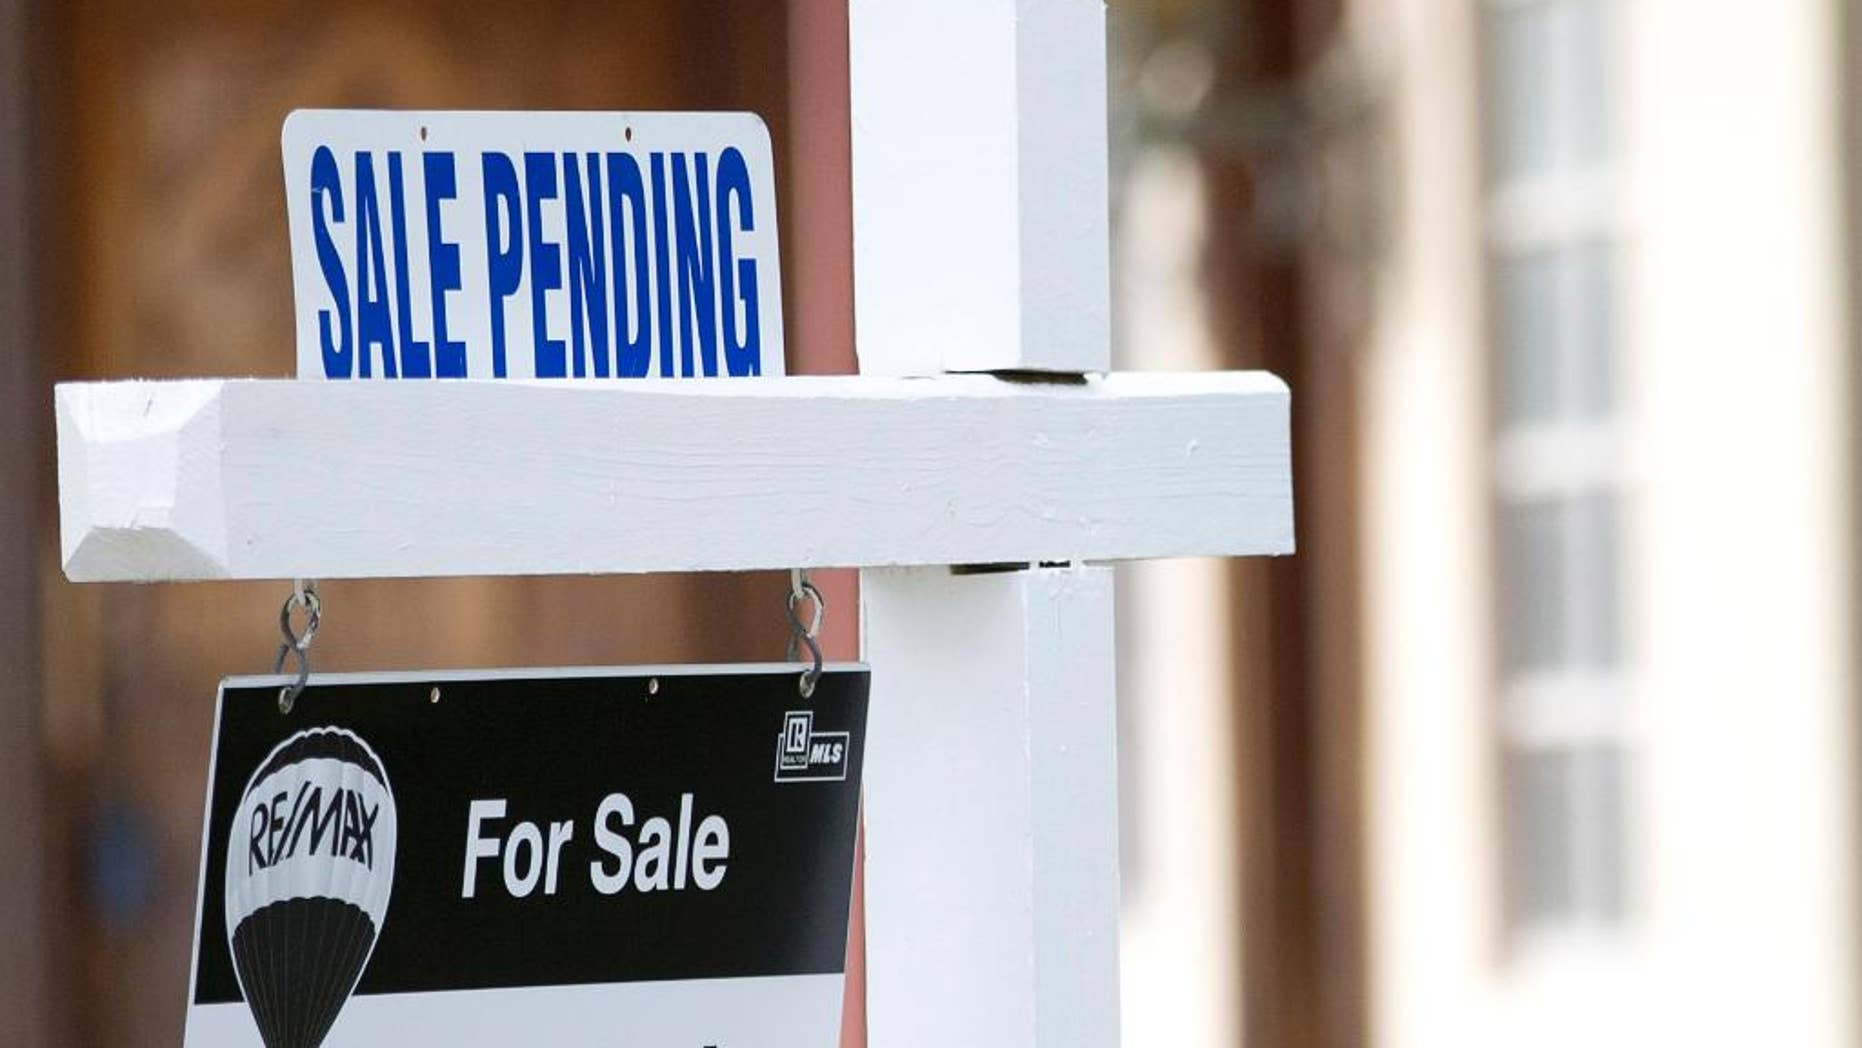 """FILE - In this Thursday, Jan. 8, 2015, file photo, a """"sale pending"""" sits atop a realty sign outside a home for sale in Surfside, Fla. The National Association of Realtors releases its pending home sales index for June on Wednesday, July 29, 2015. (AP Photo/Wilfredo Lee, File)"""